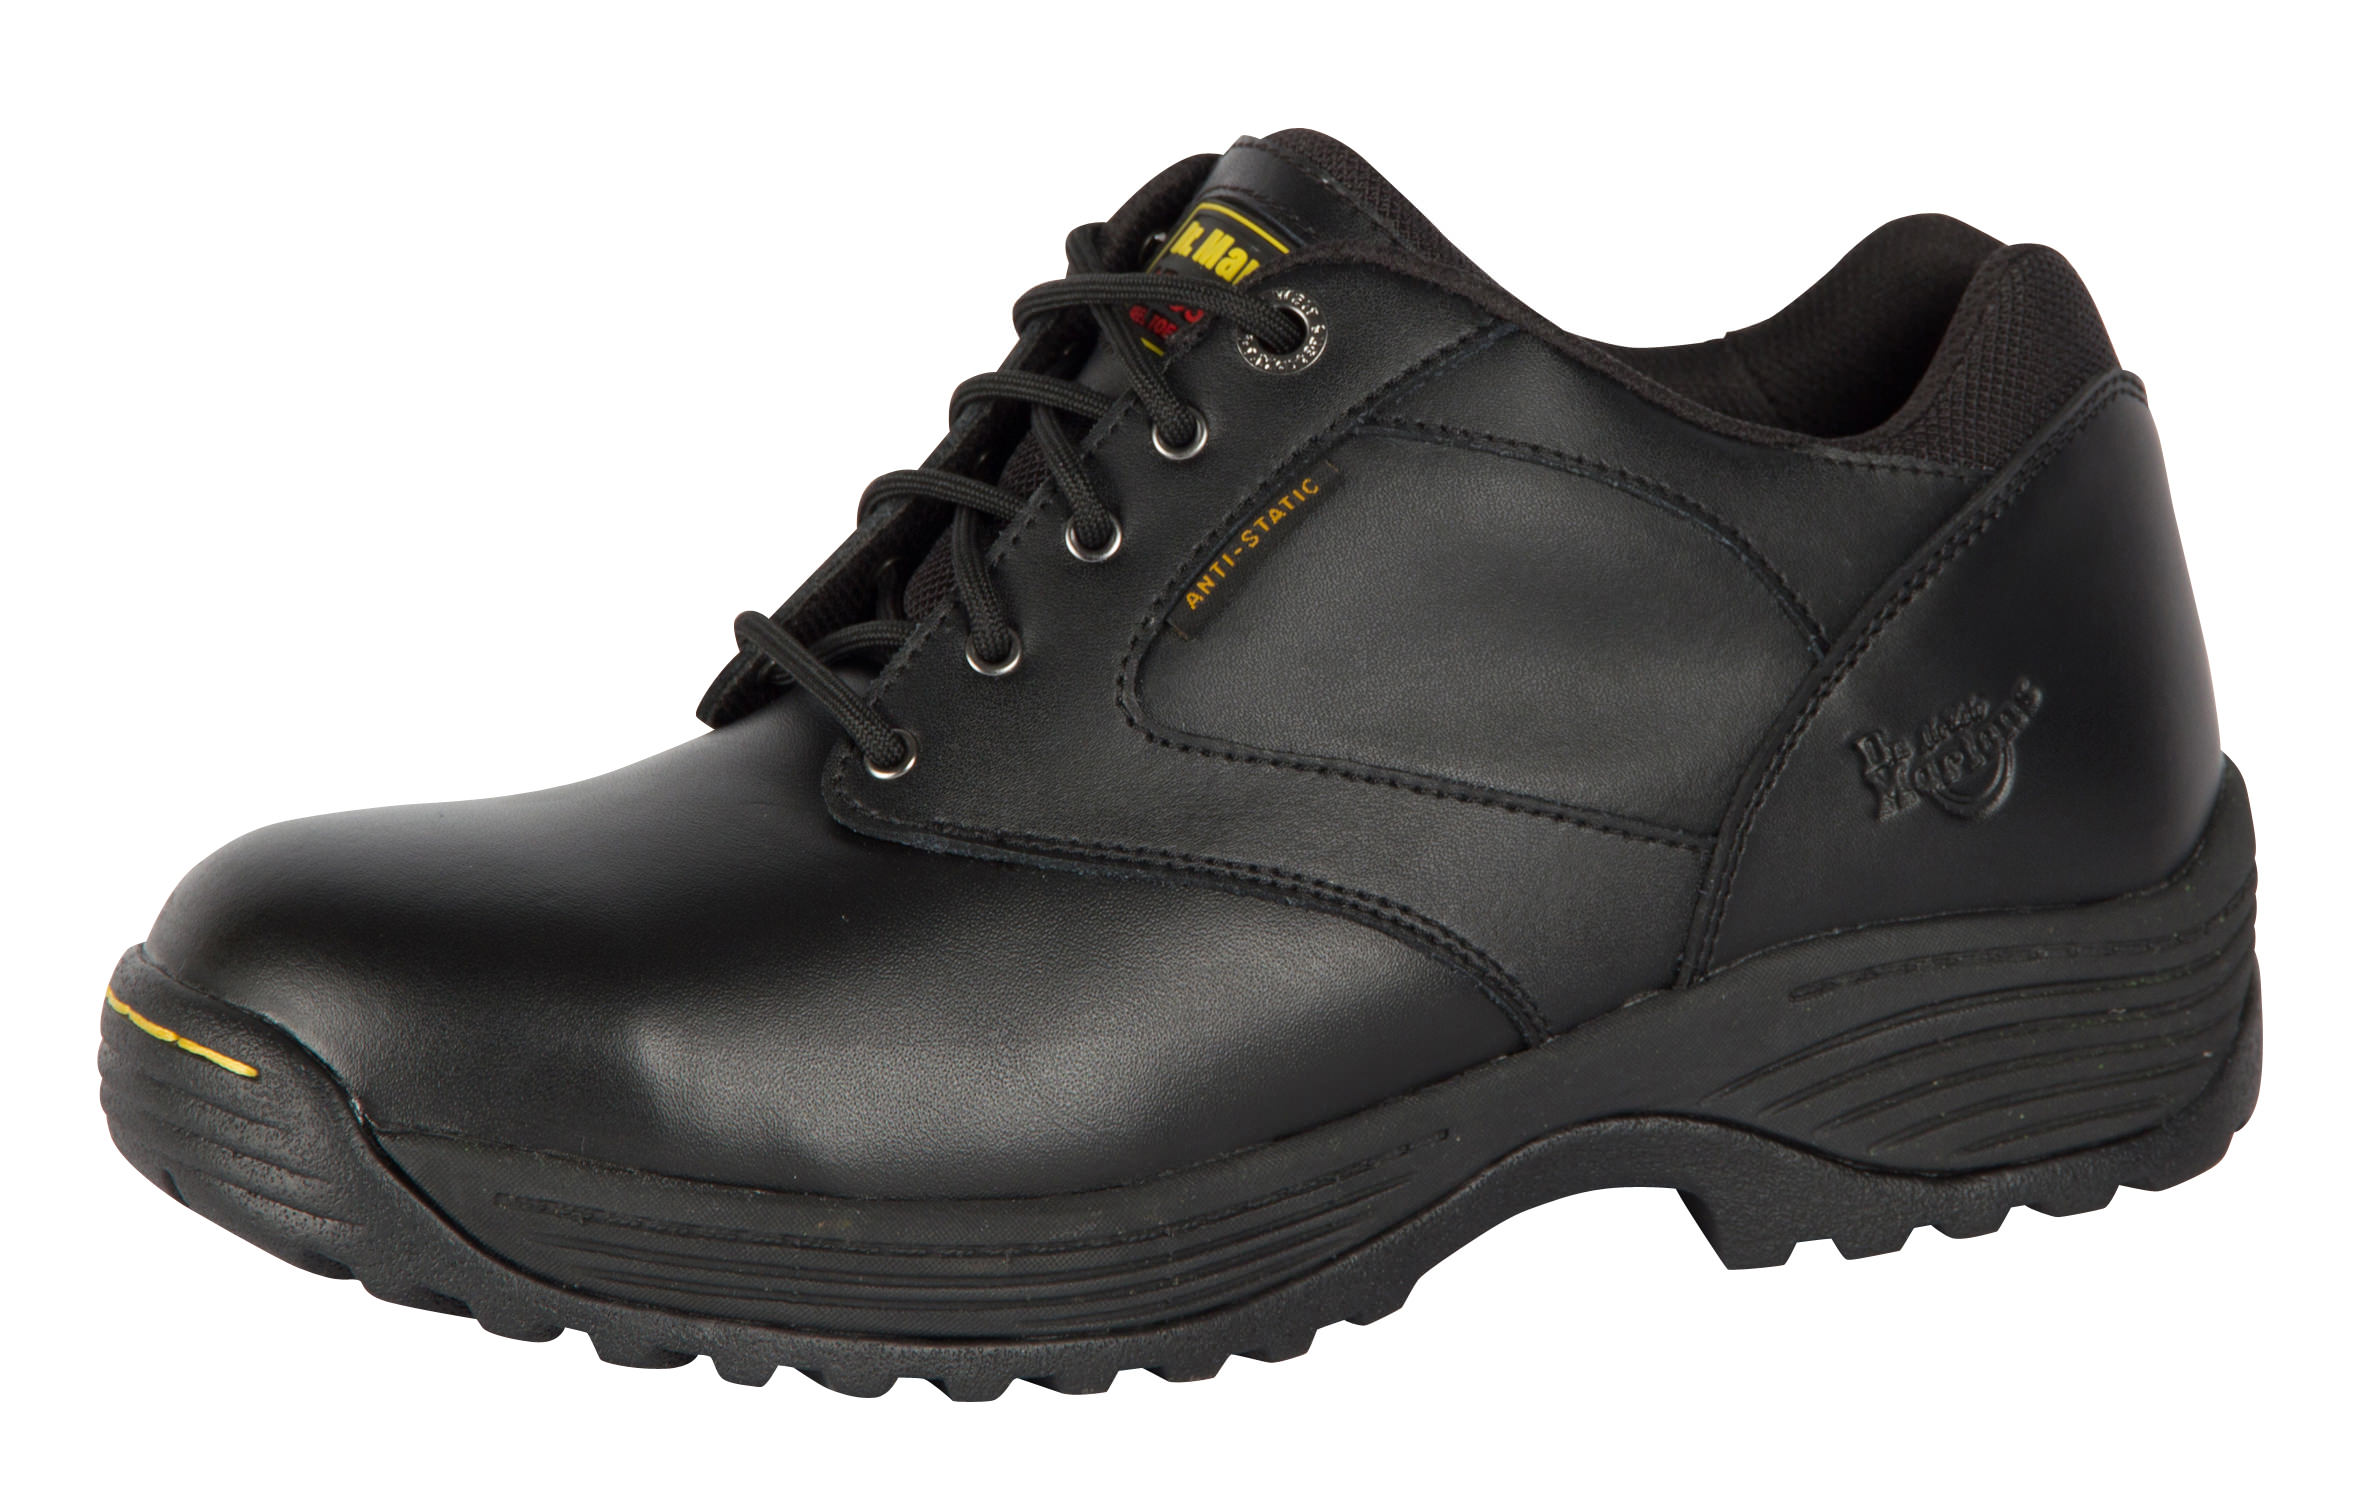 bodyguard-Shoes-Dr-Martens-Keadby-Safety-Shoe